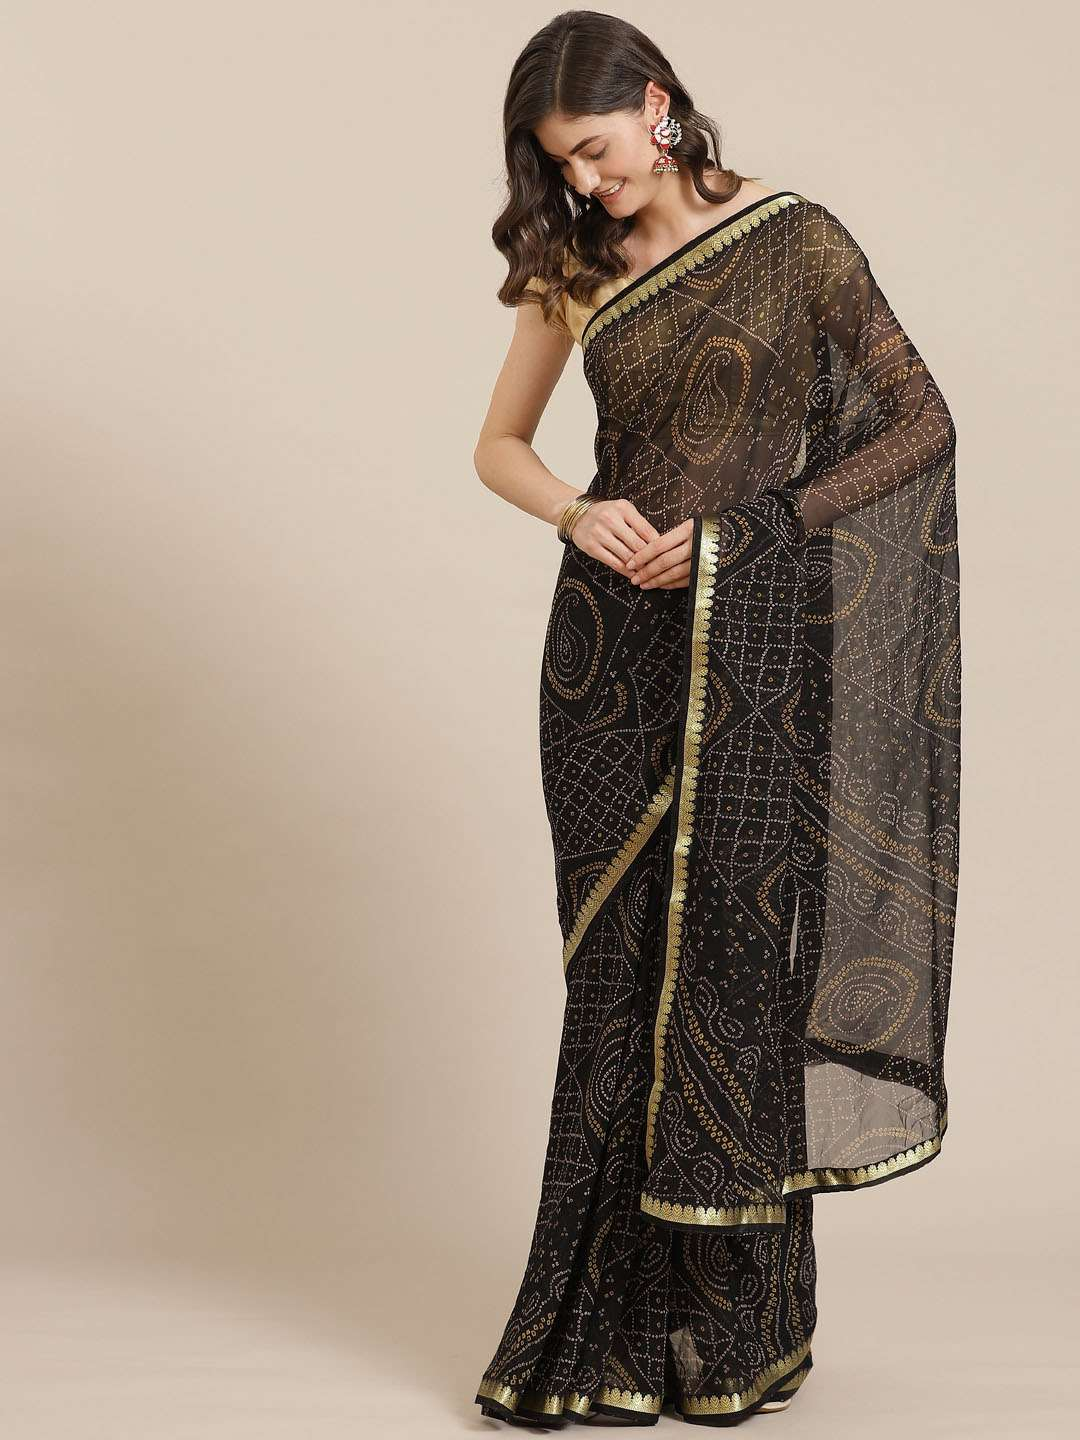 EXCLUSIVE PARTY WEAR SILK SAREES BOUTIQUE STYLE SAREES COLLECTION 13